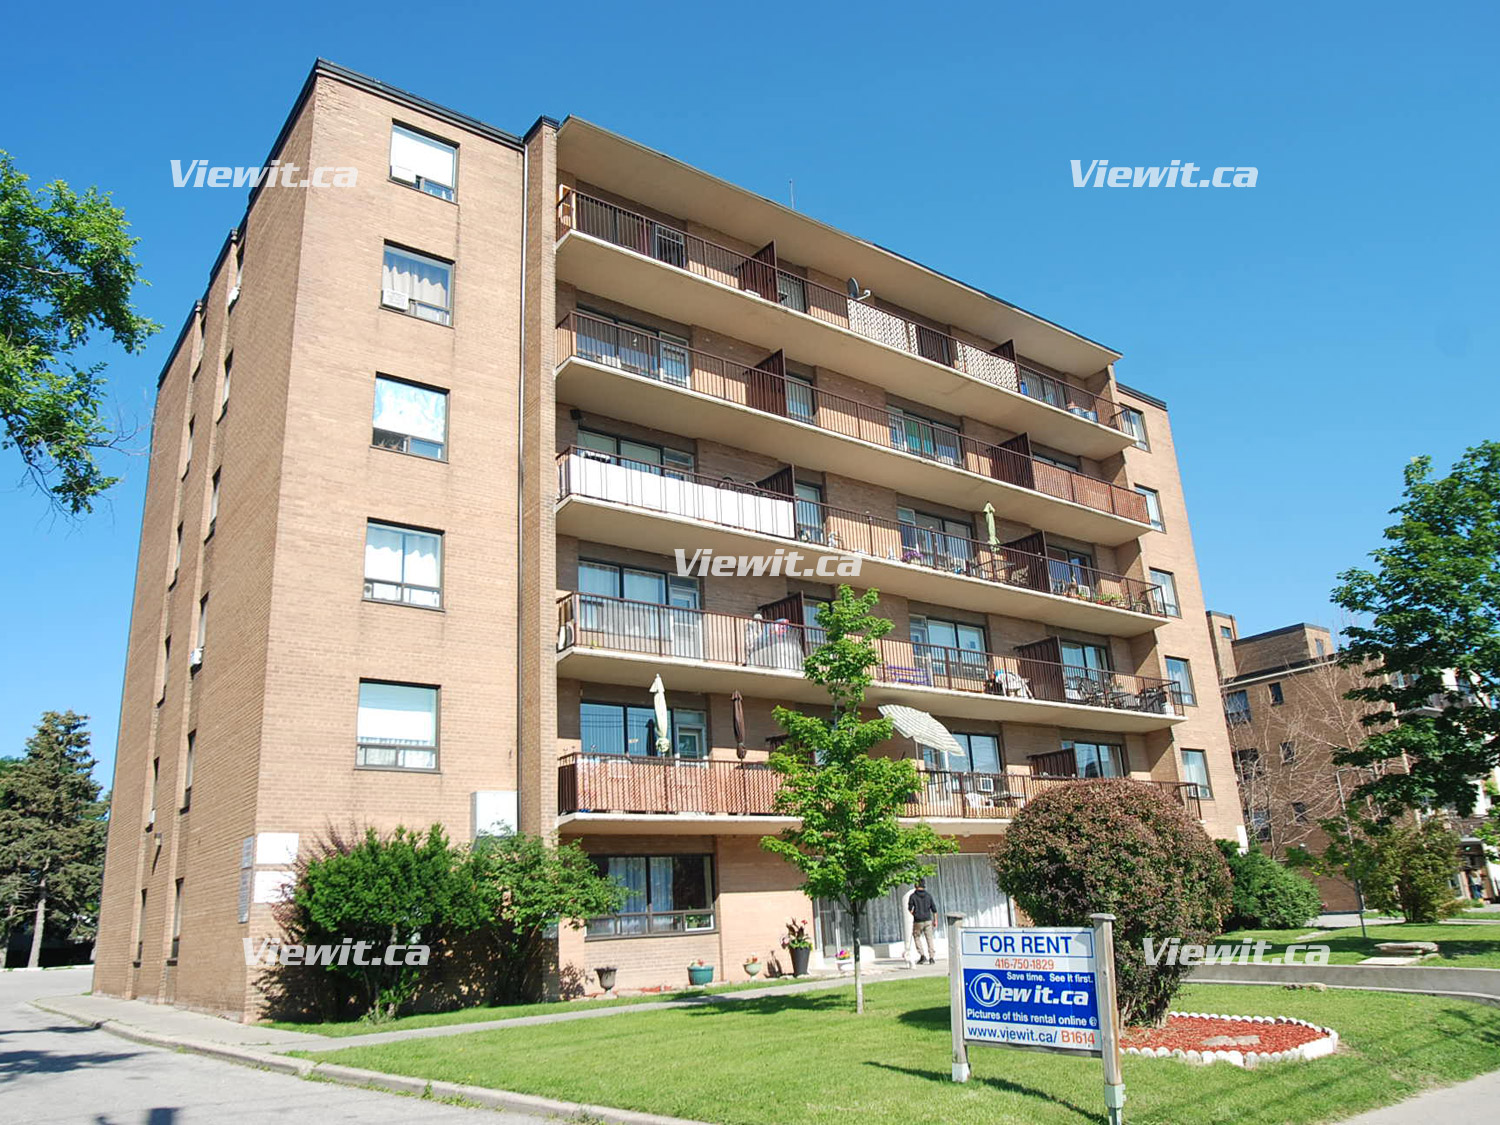 819 Kennedy Rd, SCARBOROUGH, ON : 2 Bedroom for rent ...